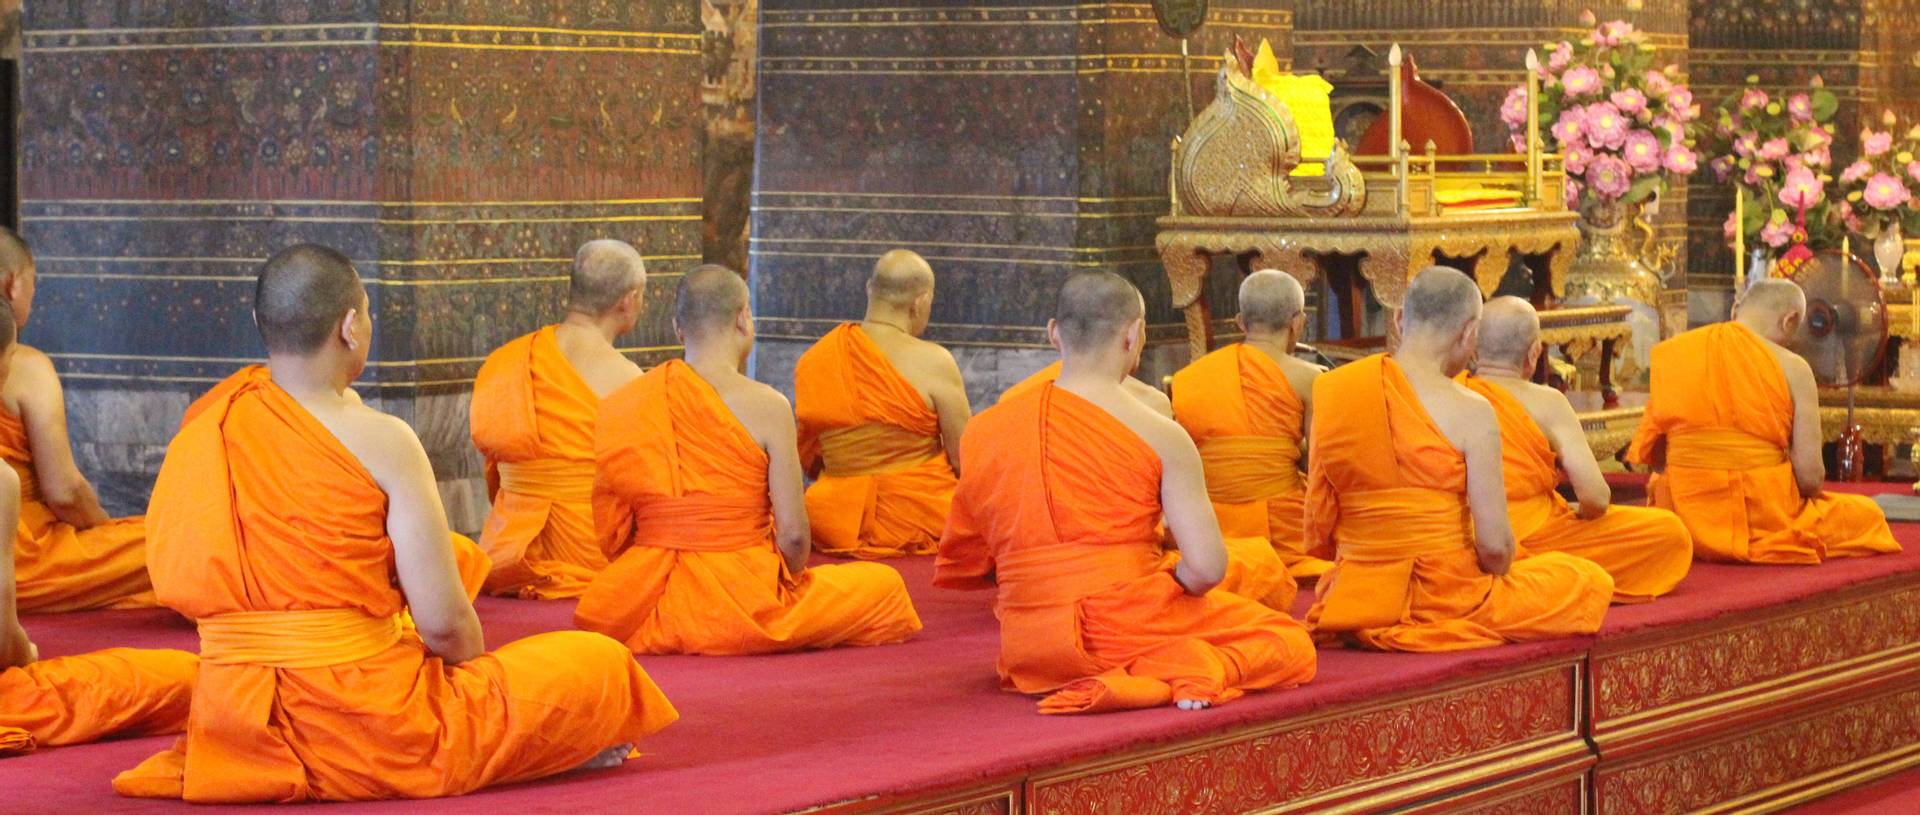 Worshippers Praying Inside The Temples Of Bangkok